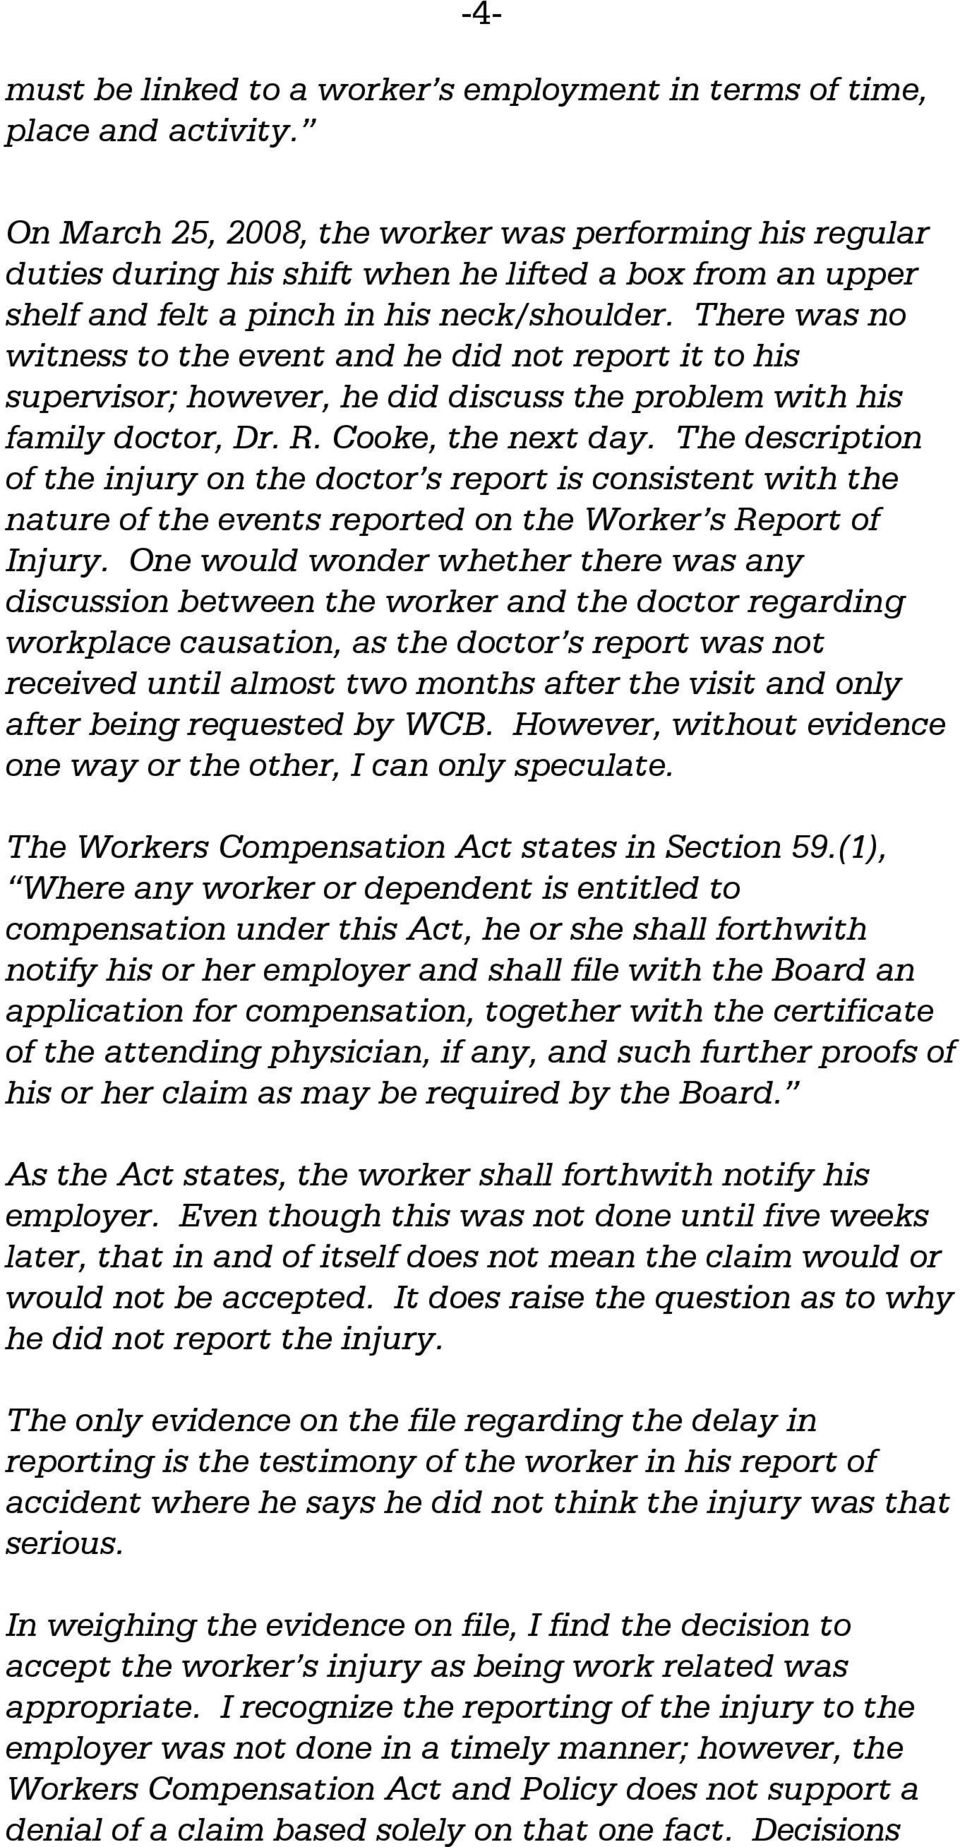 There was no witness to the event and he did not report it to his supervisor; however, he did discuss the problem with his family doctor, Dr. R. Cooke, the next day.